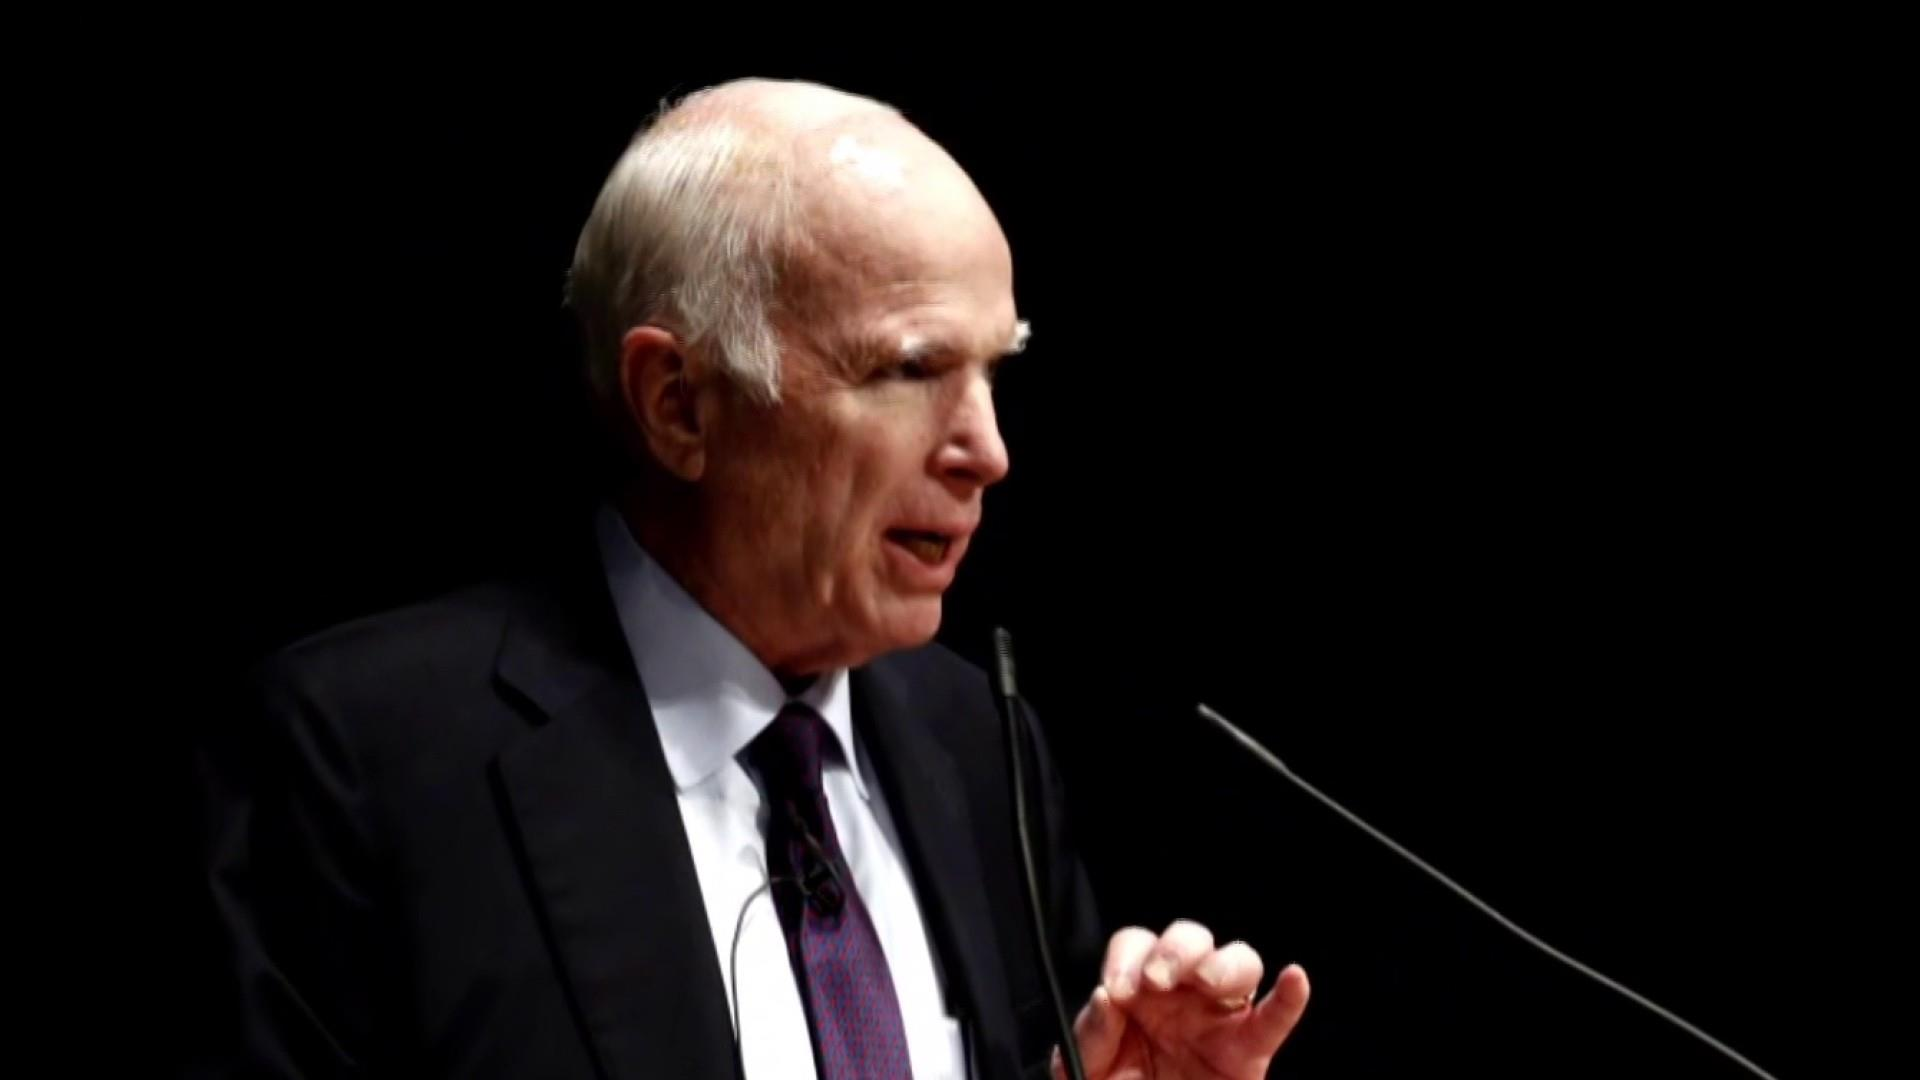 McCain discusses his last term in office in memoir